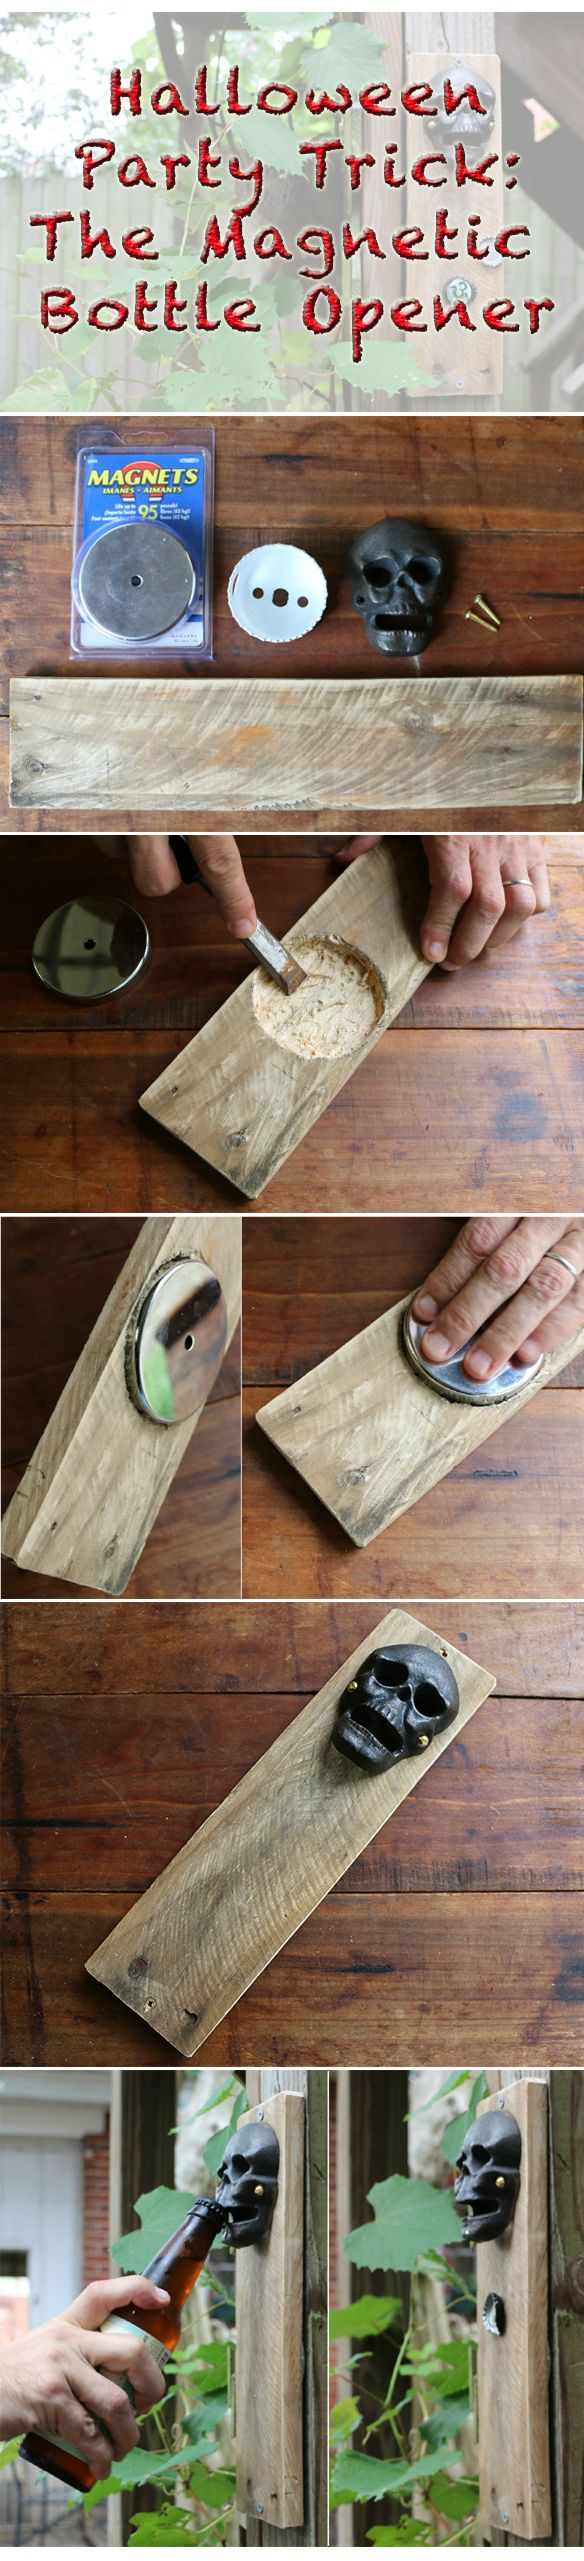 This isn't your typical bottle opener — it's got a hidden secret. It's magnetic for catching bottle caps. Perfect for Halloween parties. Your guests will LOVE this!